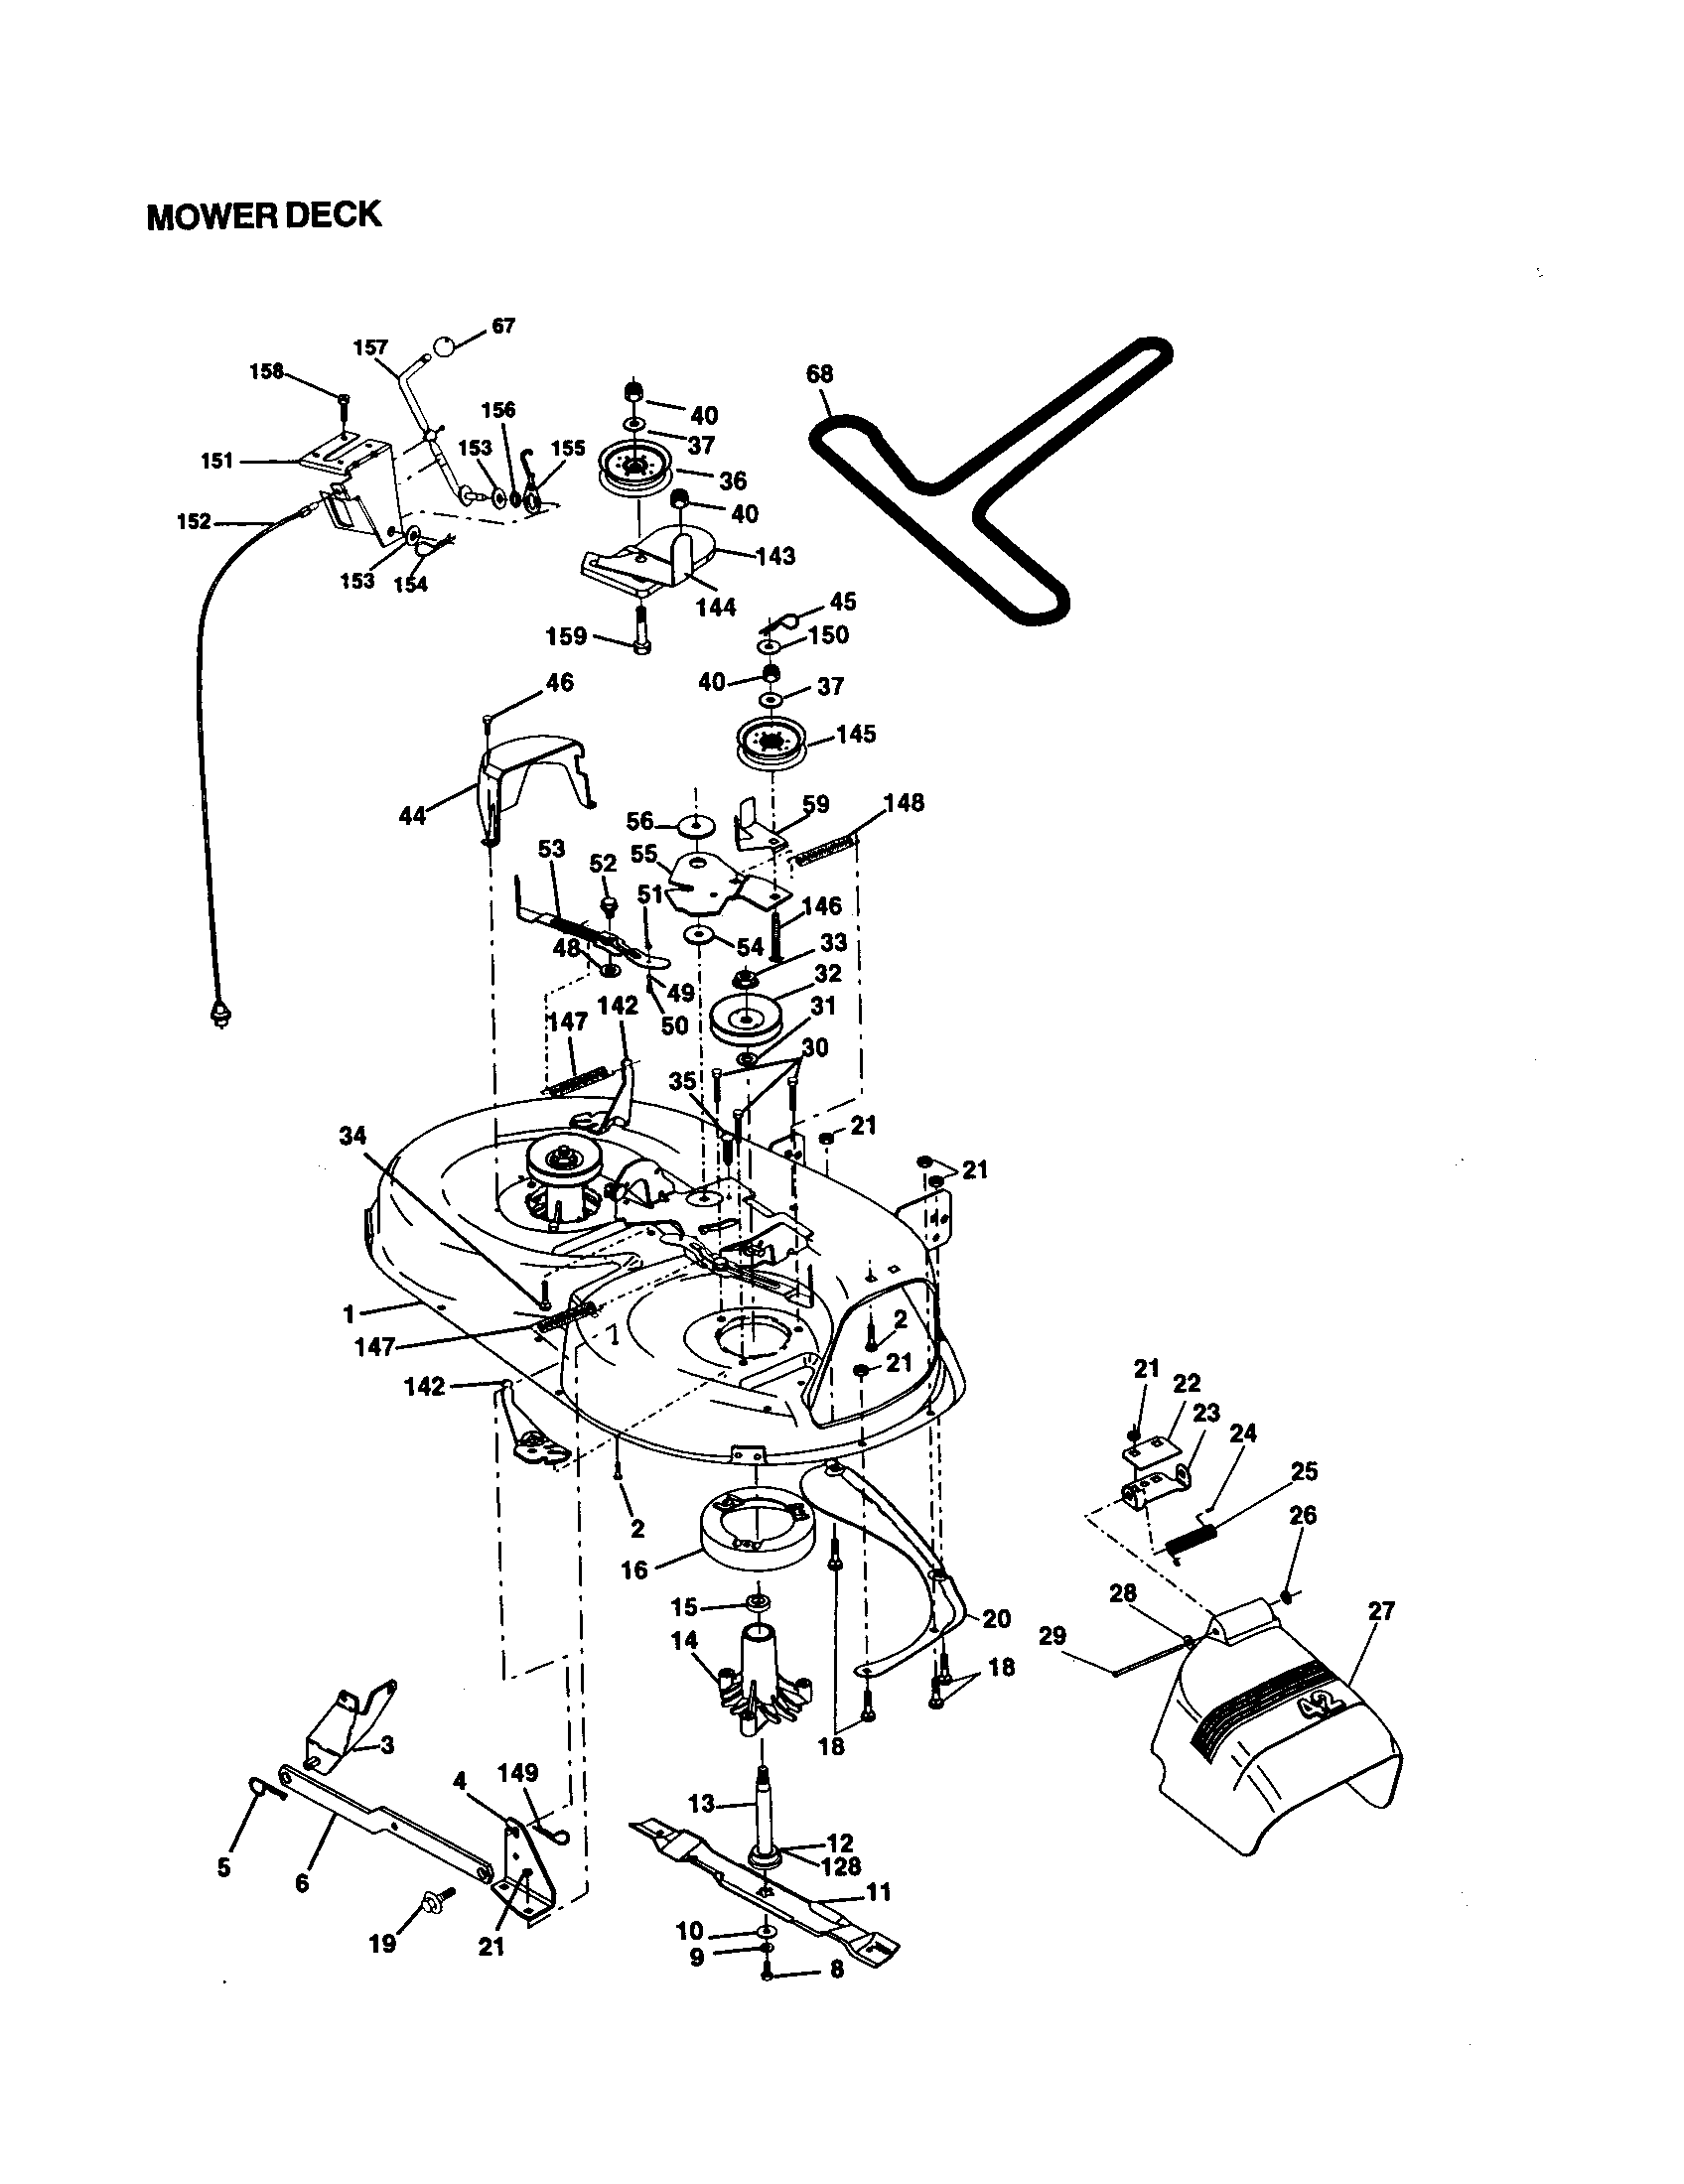 wiring diagram 24 volt earthwise mower